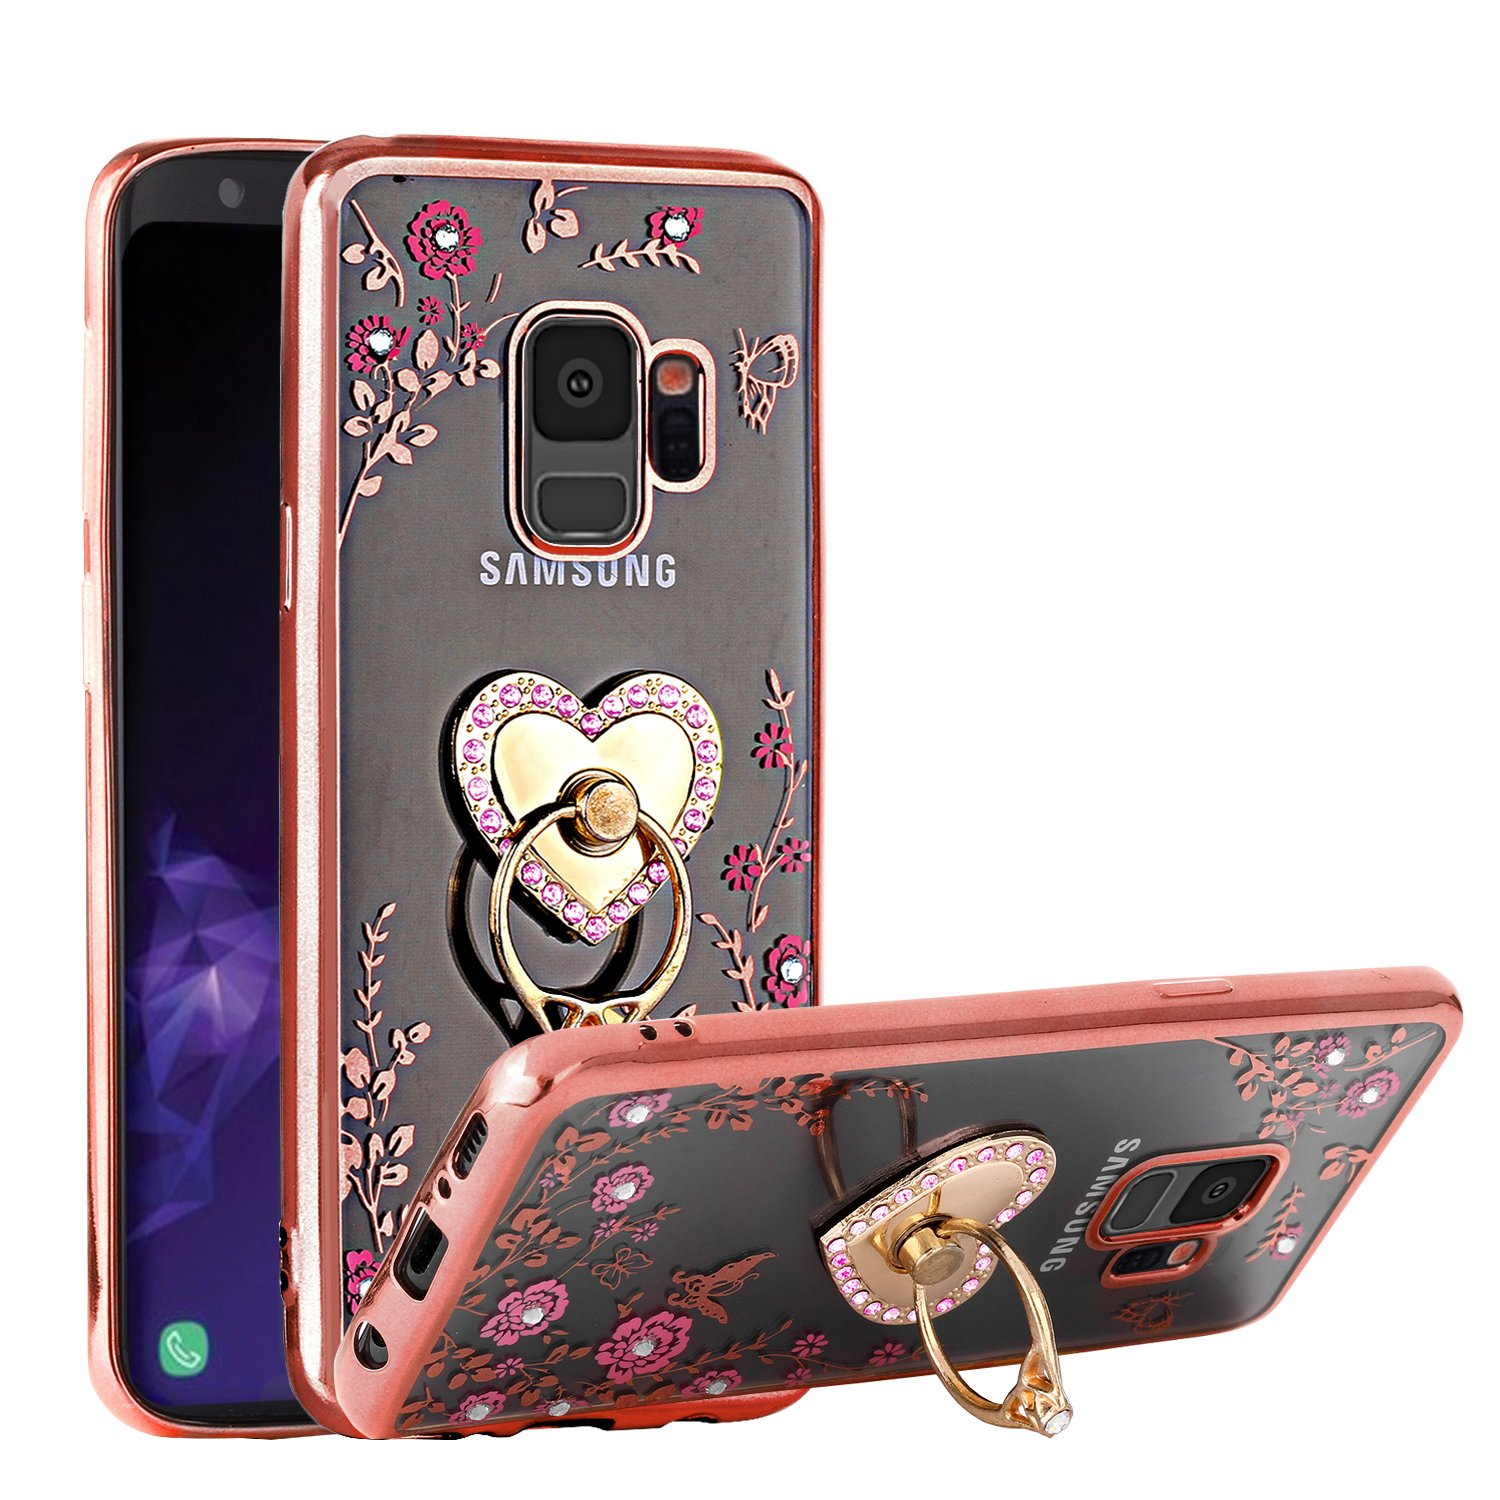 new arrival 0615d 95aea Galaxy S9 Case, Glitter Crystal Heart Floral Series - Slim Luxury Bling  Rhinestone Clear TPU Case Ring Stand Samsung Galaxy S9 (2018 Release) -  Rose ...